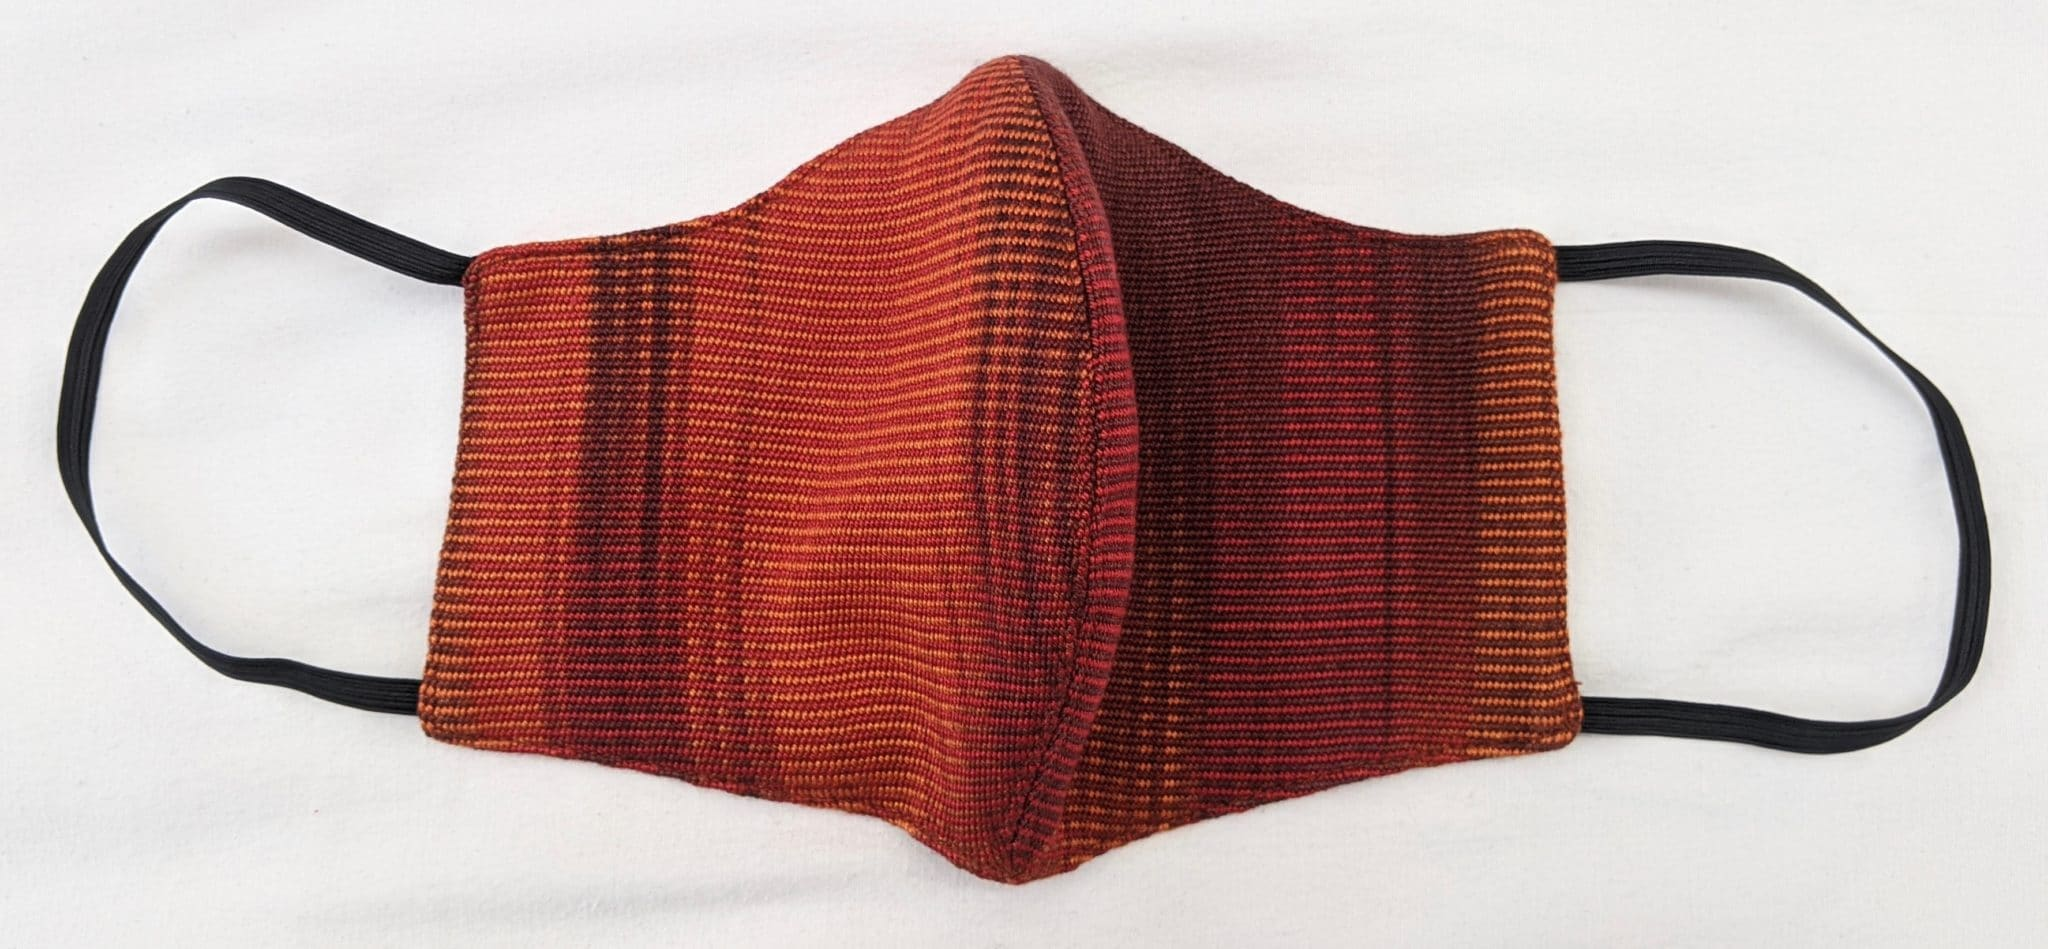 Handwoven Lightweight Bamboo Face Mask with Elastic Behind Ears - Rich Reds, Copper